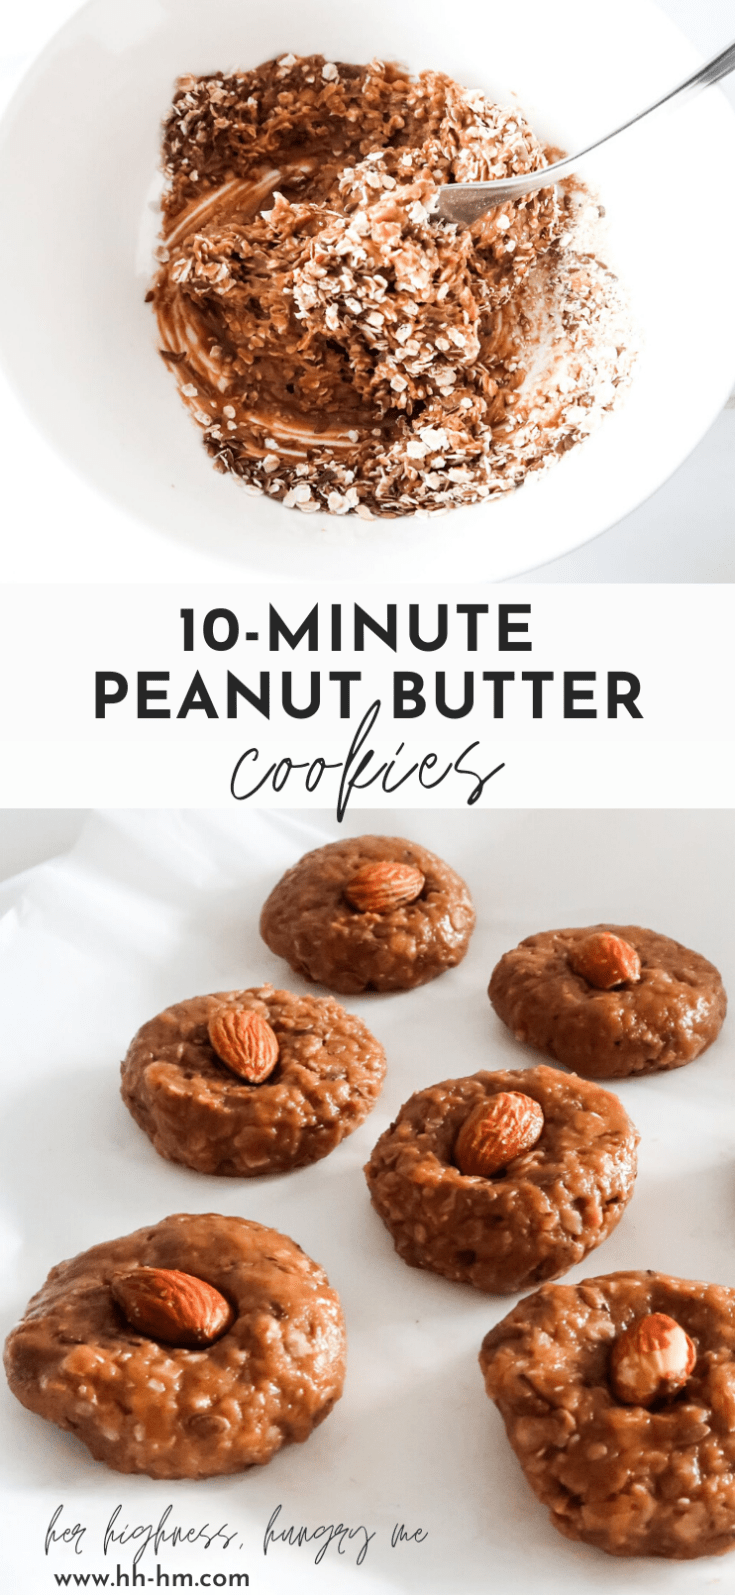 Easy healthy peanut butter cookies that you'll love! These homemade no-bake cookies are made with oatmeal and peanut butter, are flourless, delicious and made in one bowl within 10 minutes. If you love peanut butter and sweet peanut butter based healthy snacks - these are for you!